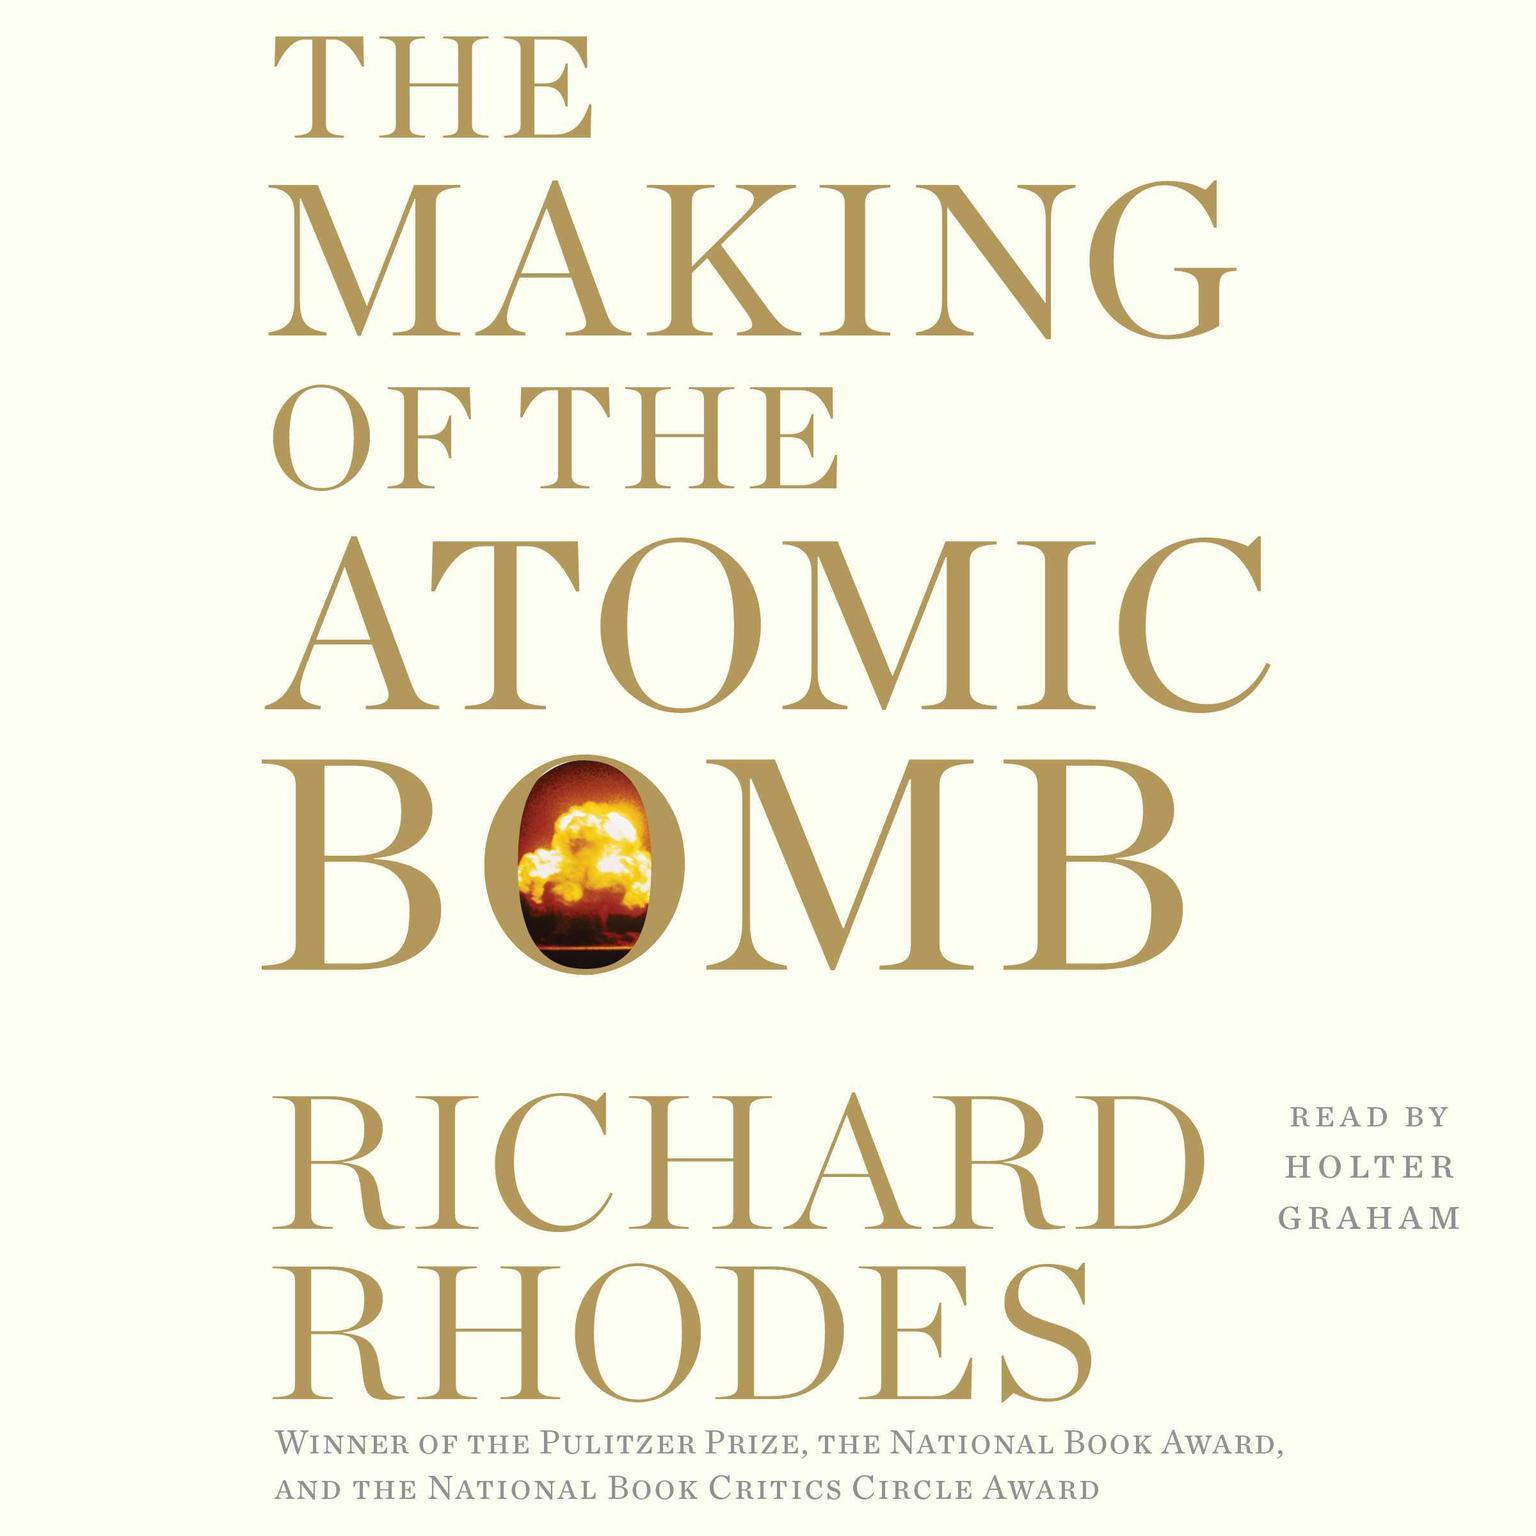 a history of the making of the atomic bomb